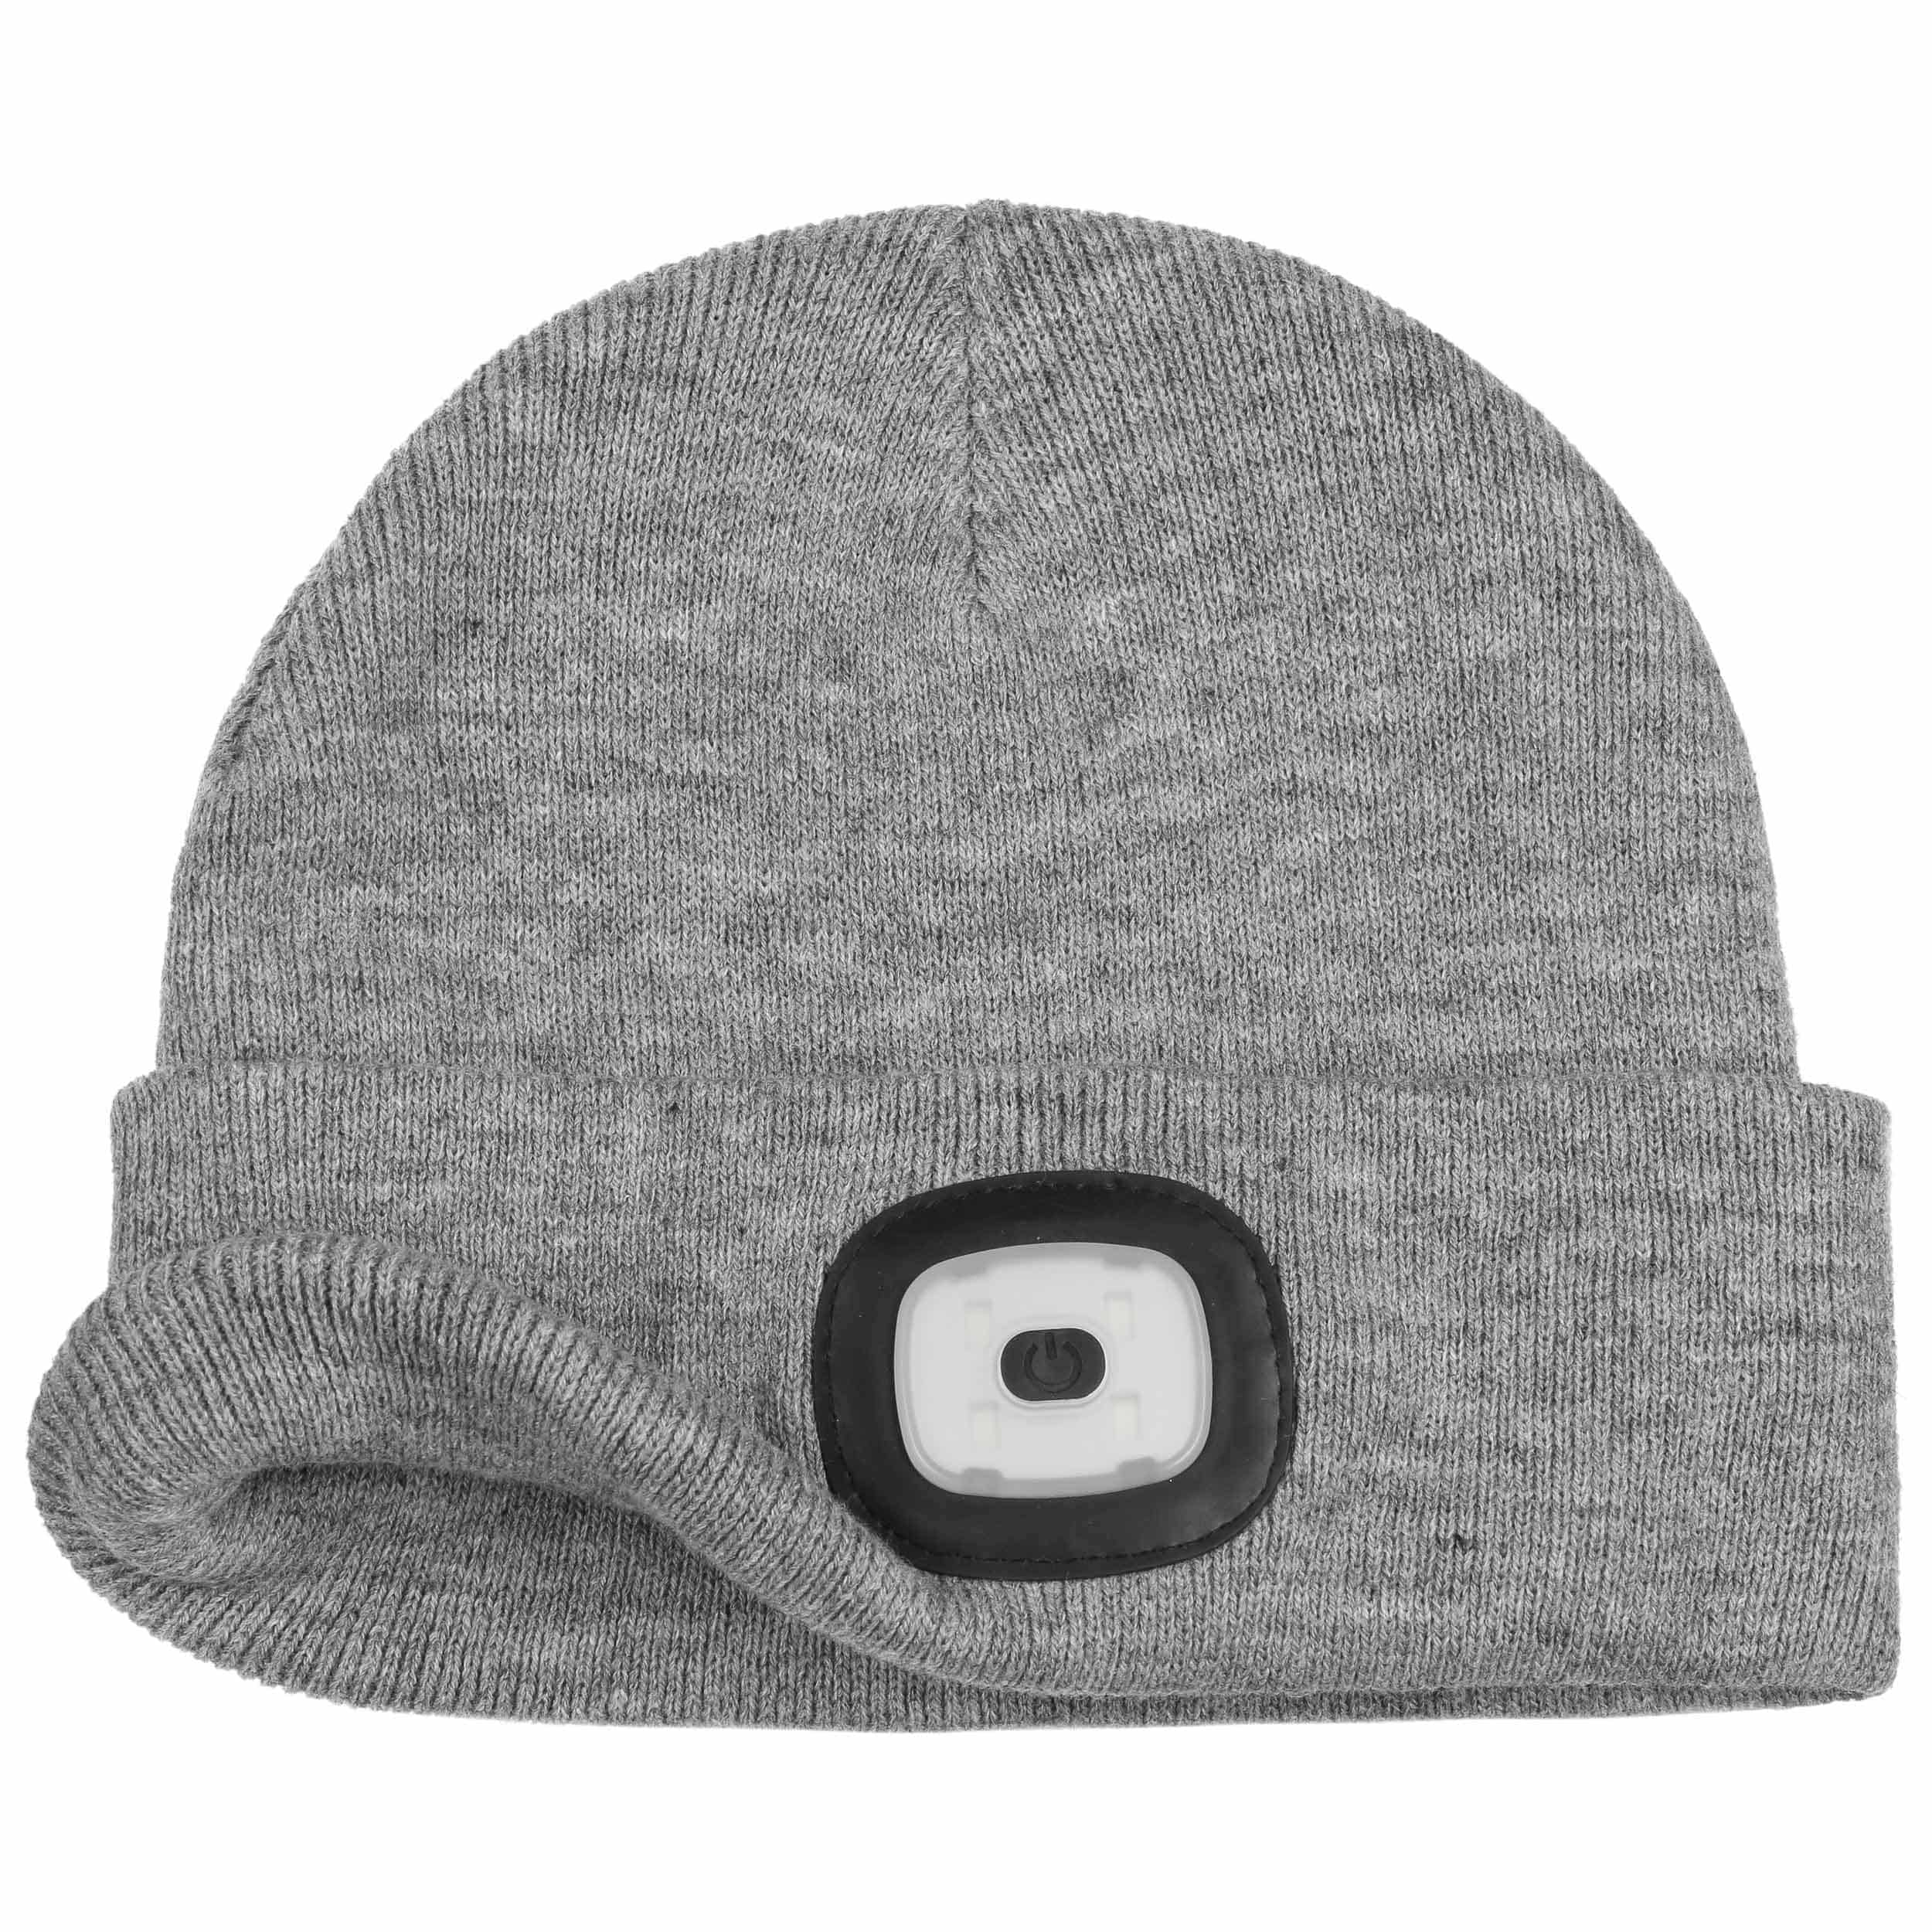 Chilllight Cuffed Beanie with LED by Chillouts - grey 1 ... d0734dade56a